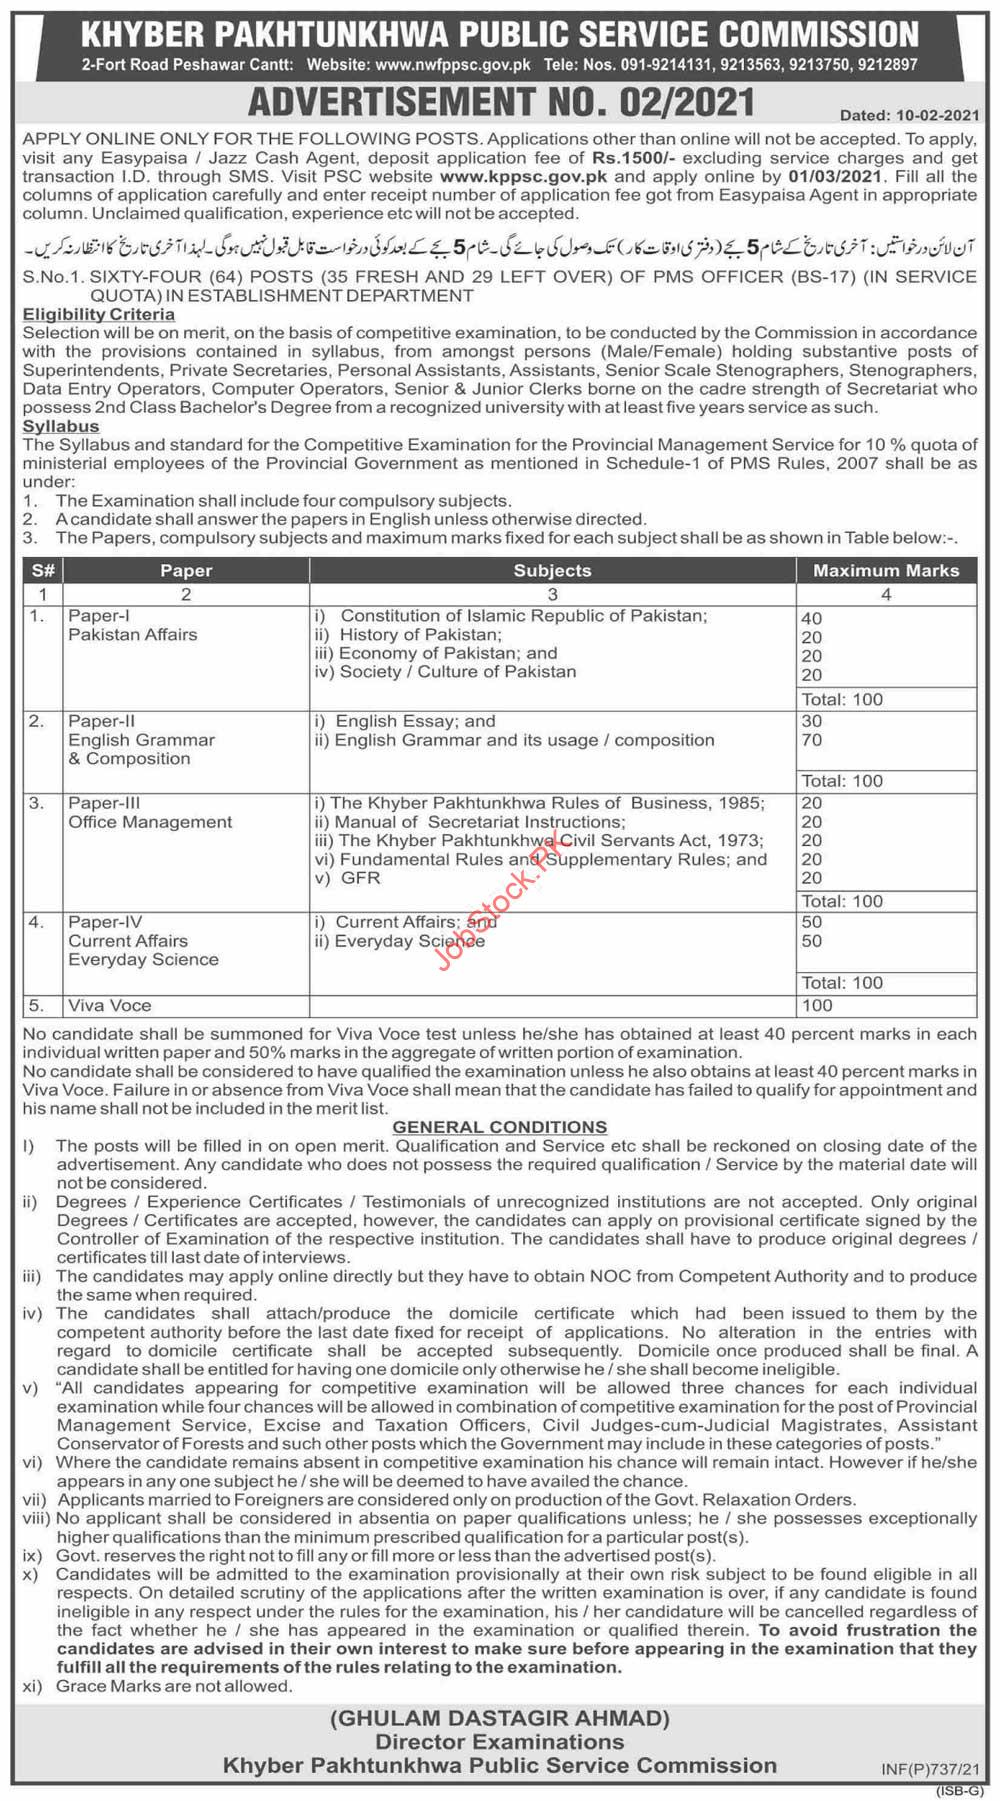 Khyber Pakhtunkhwa Public Service Commission Kppsc Jobs 2021 Latest